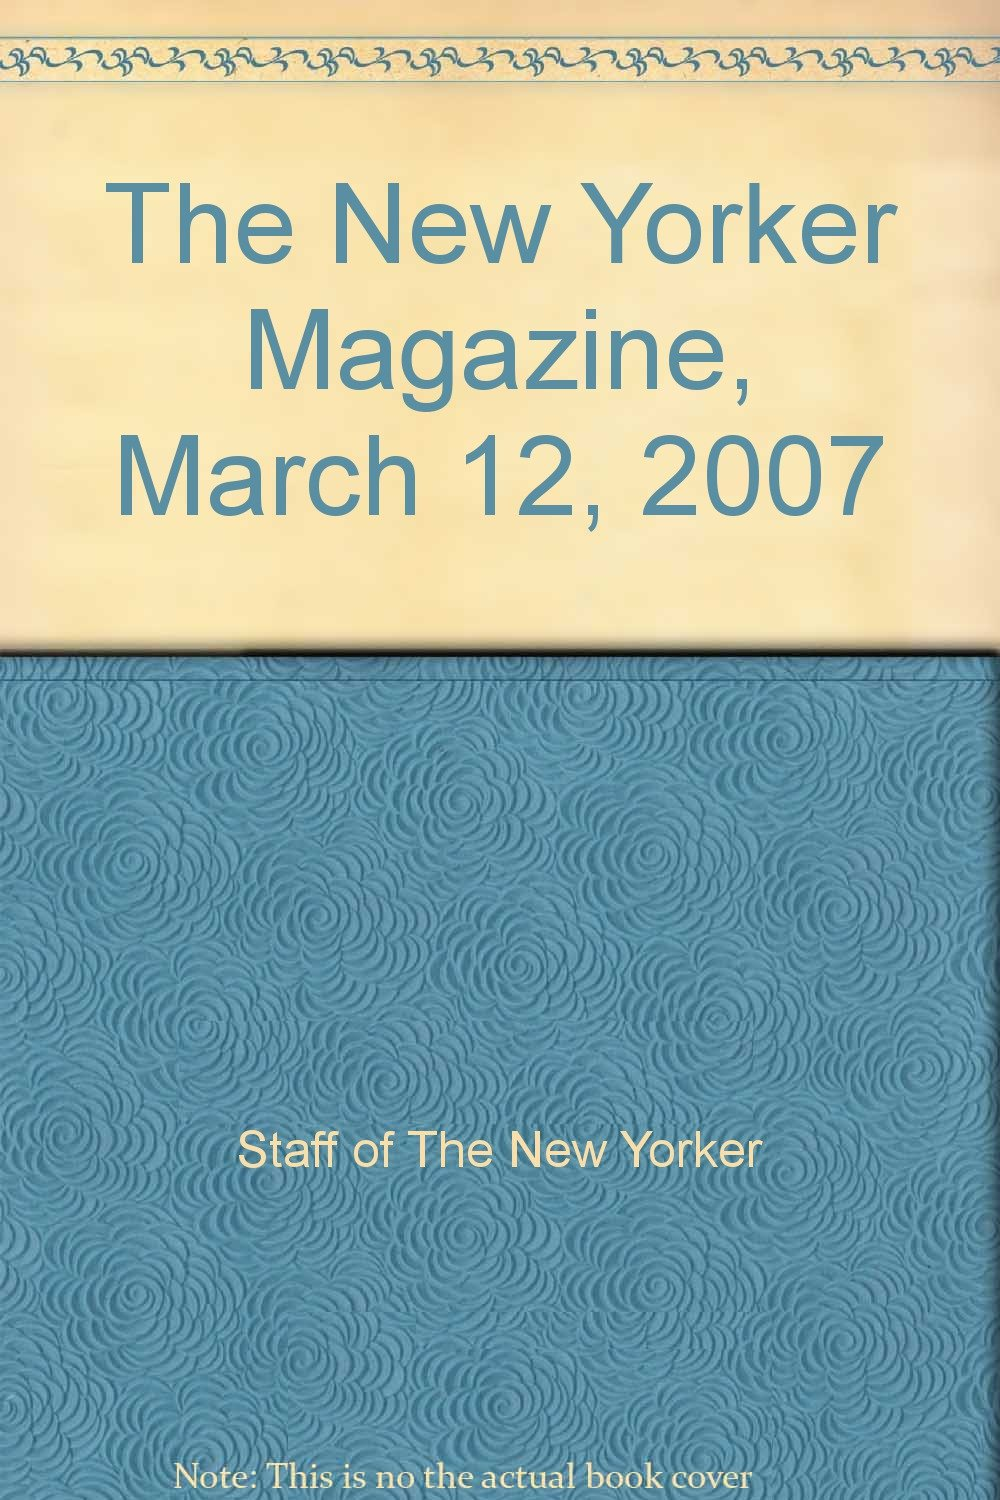 The New Yorker Magazine, March 12, 2007 PDF